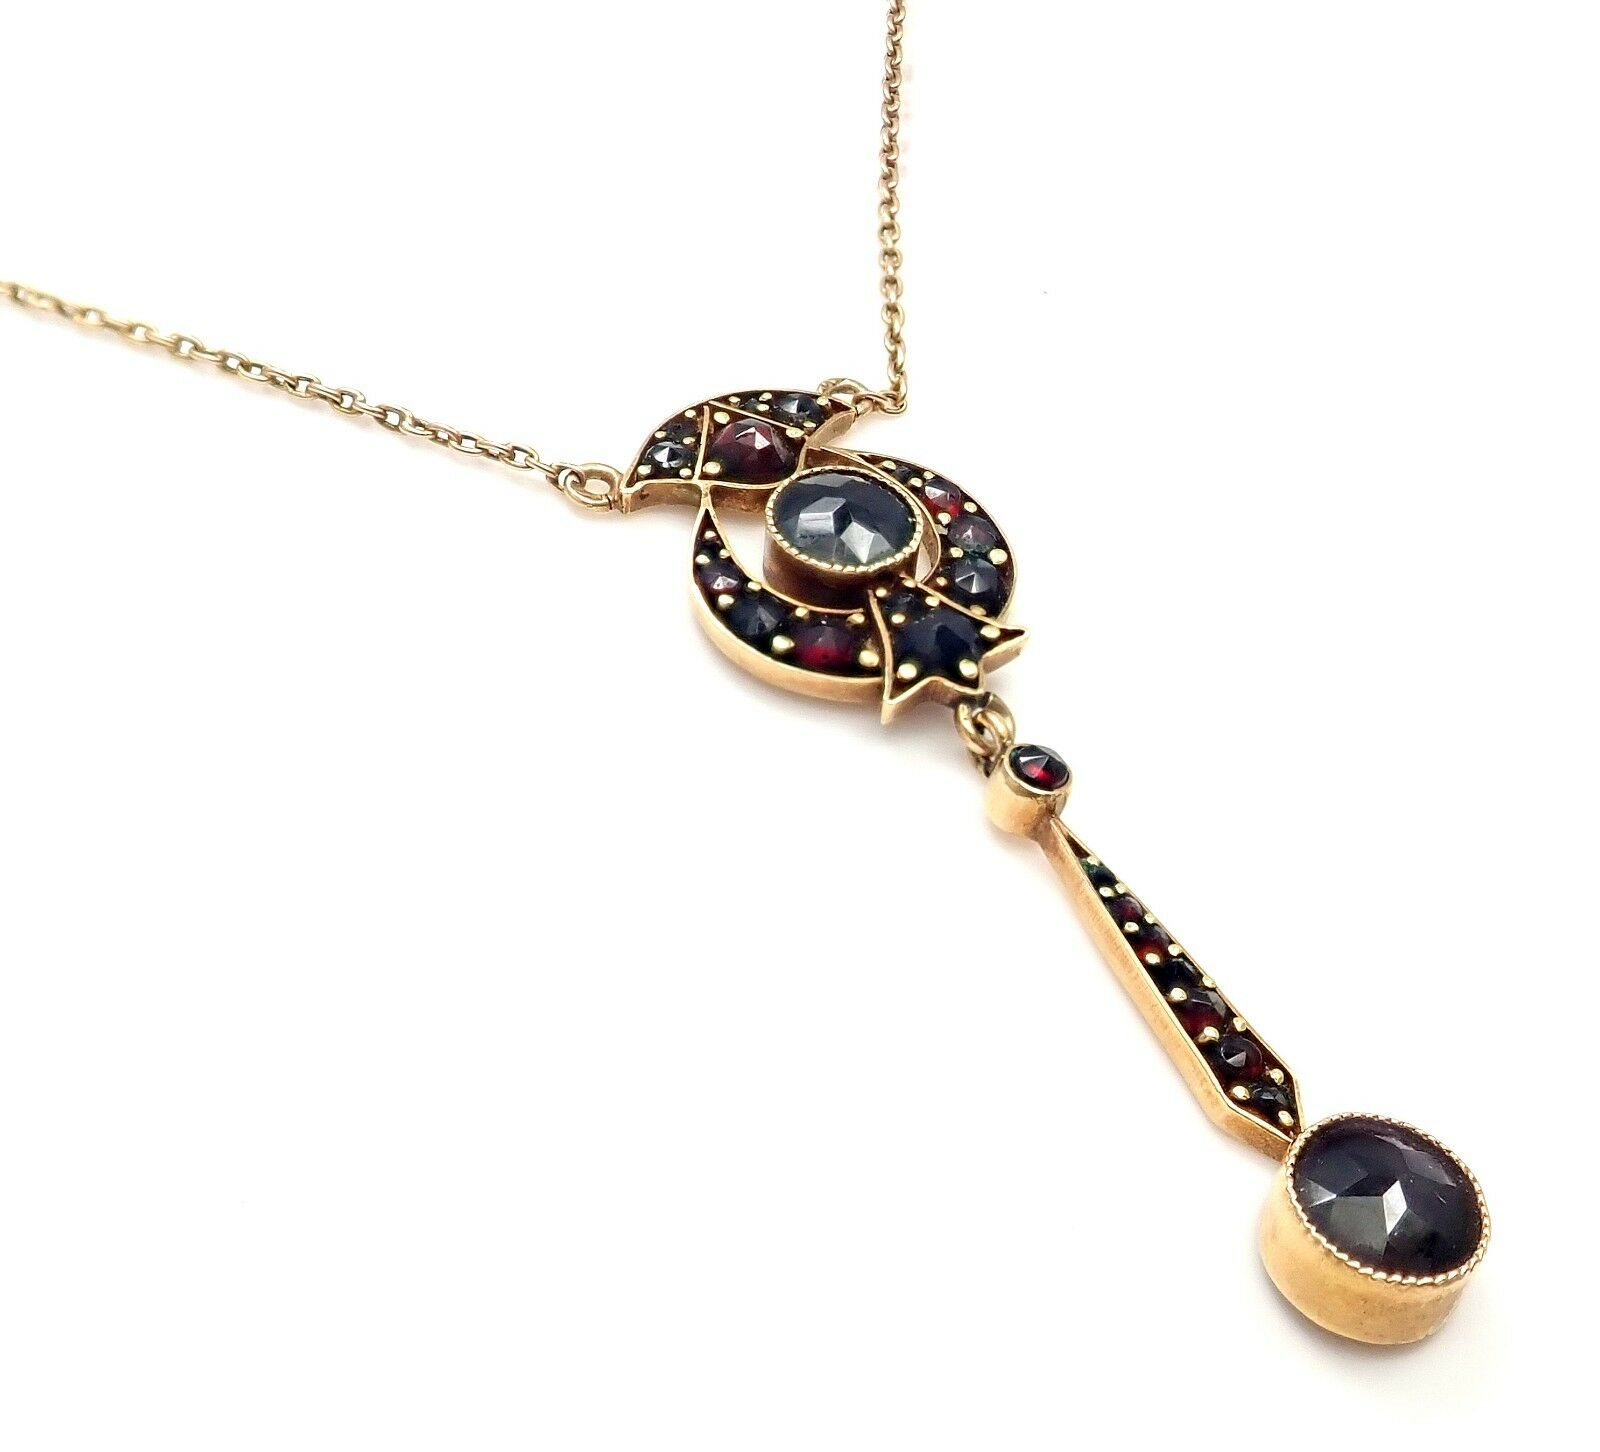 Vintage Estate 18k Rose Gold Garnet Pendant Necklace